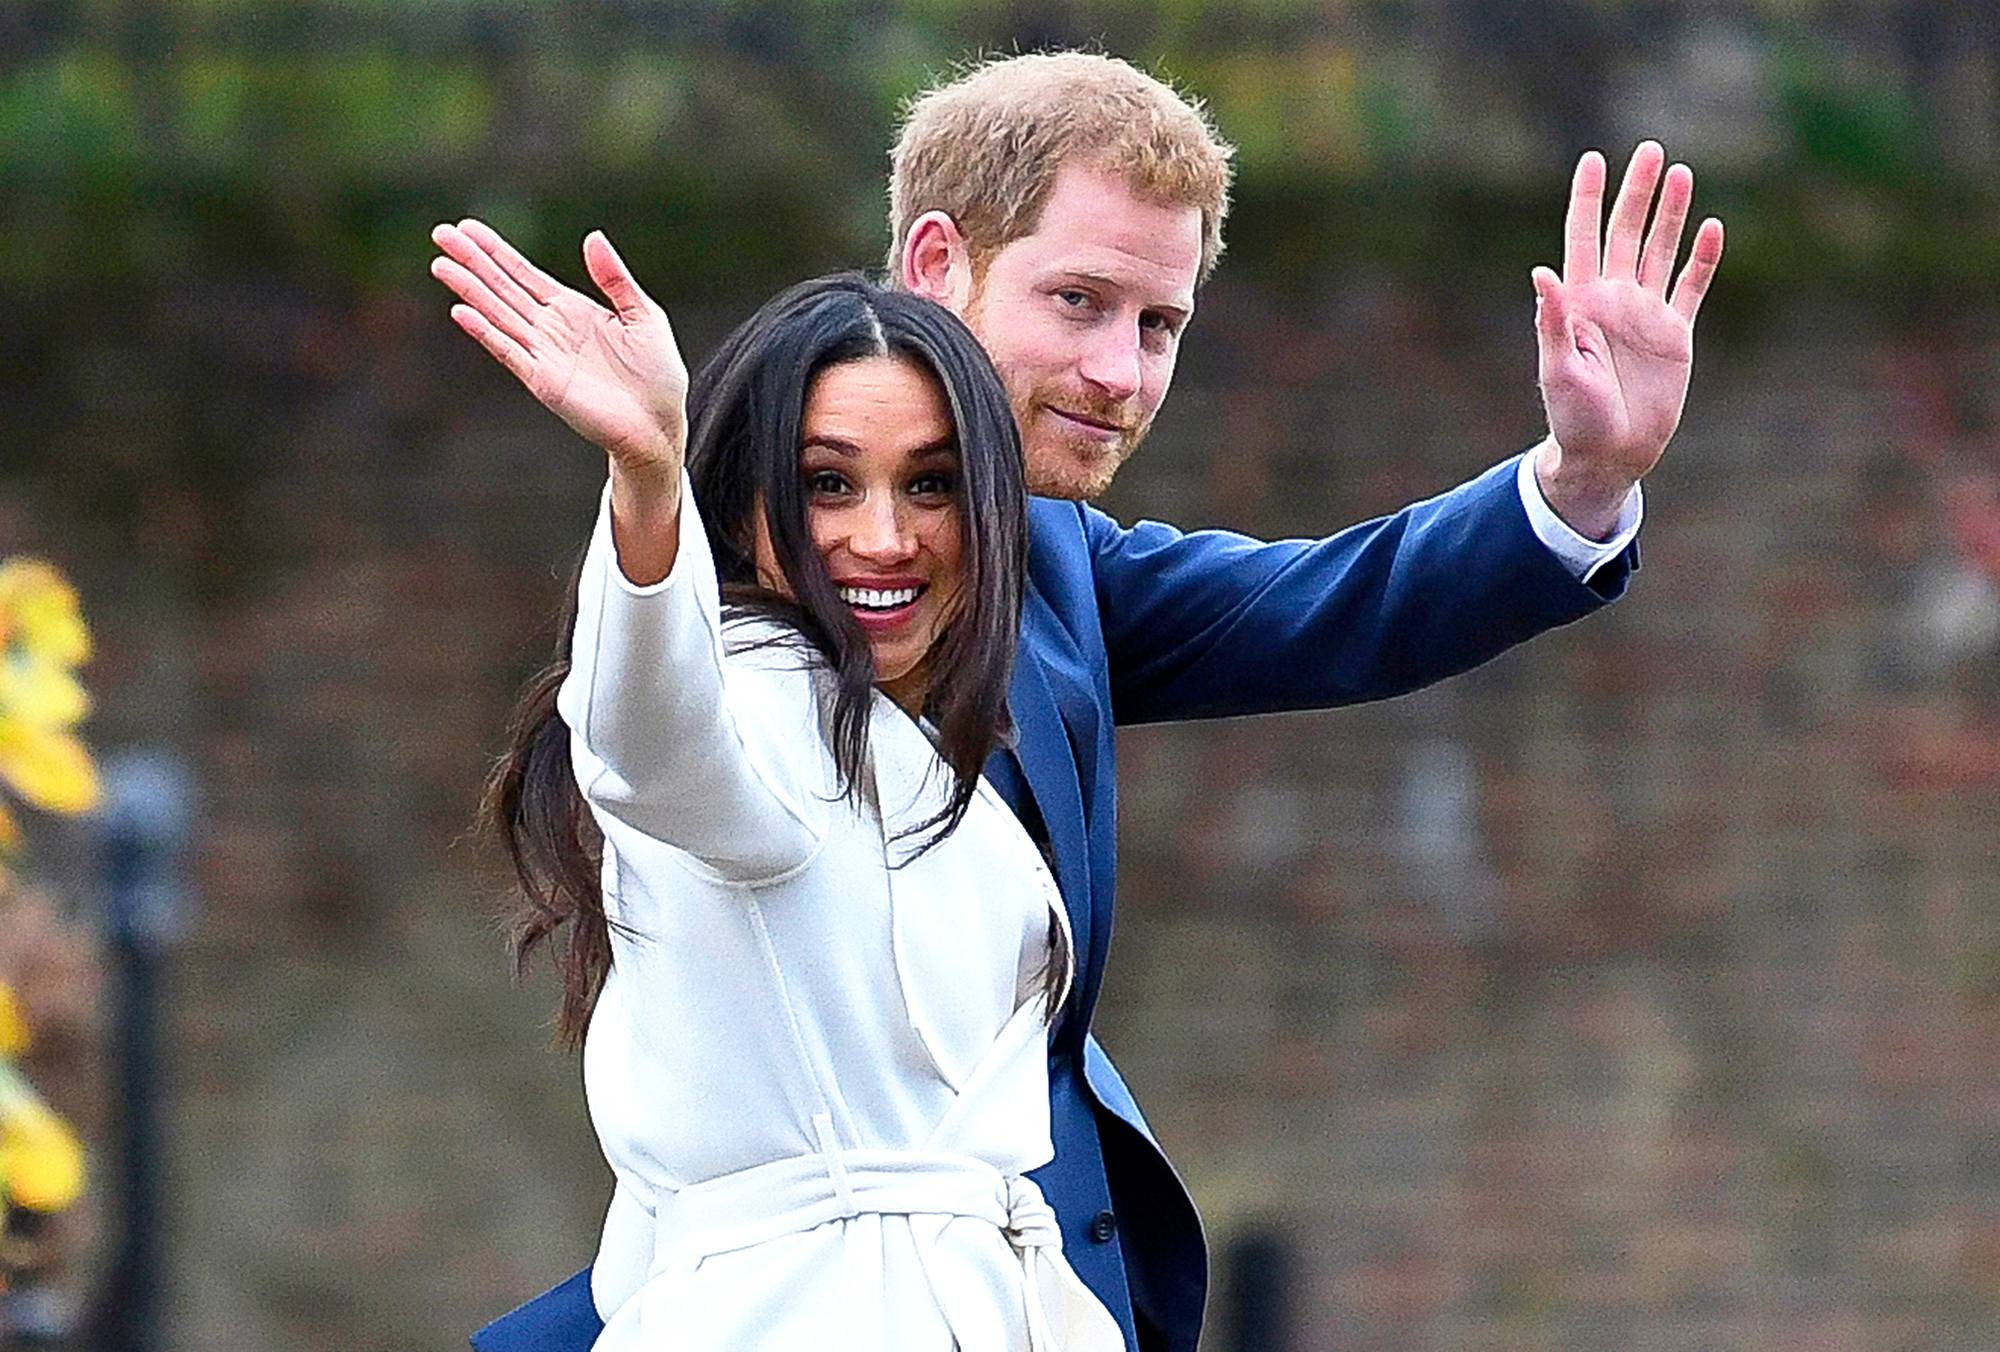 Prince Harry And Meghan Markle Attend An Official Photocall To Announce Their Engagement At The Sunken